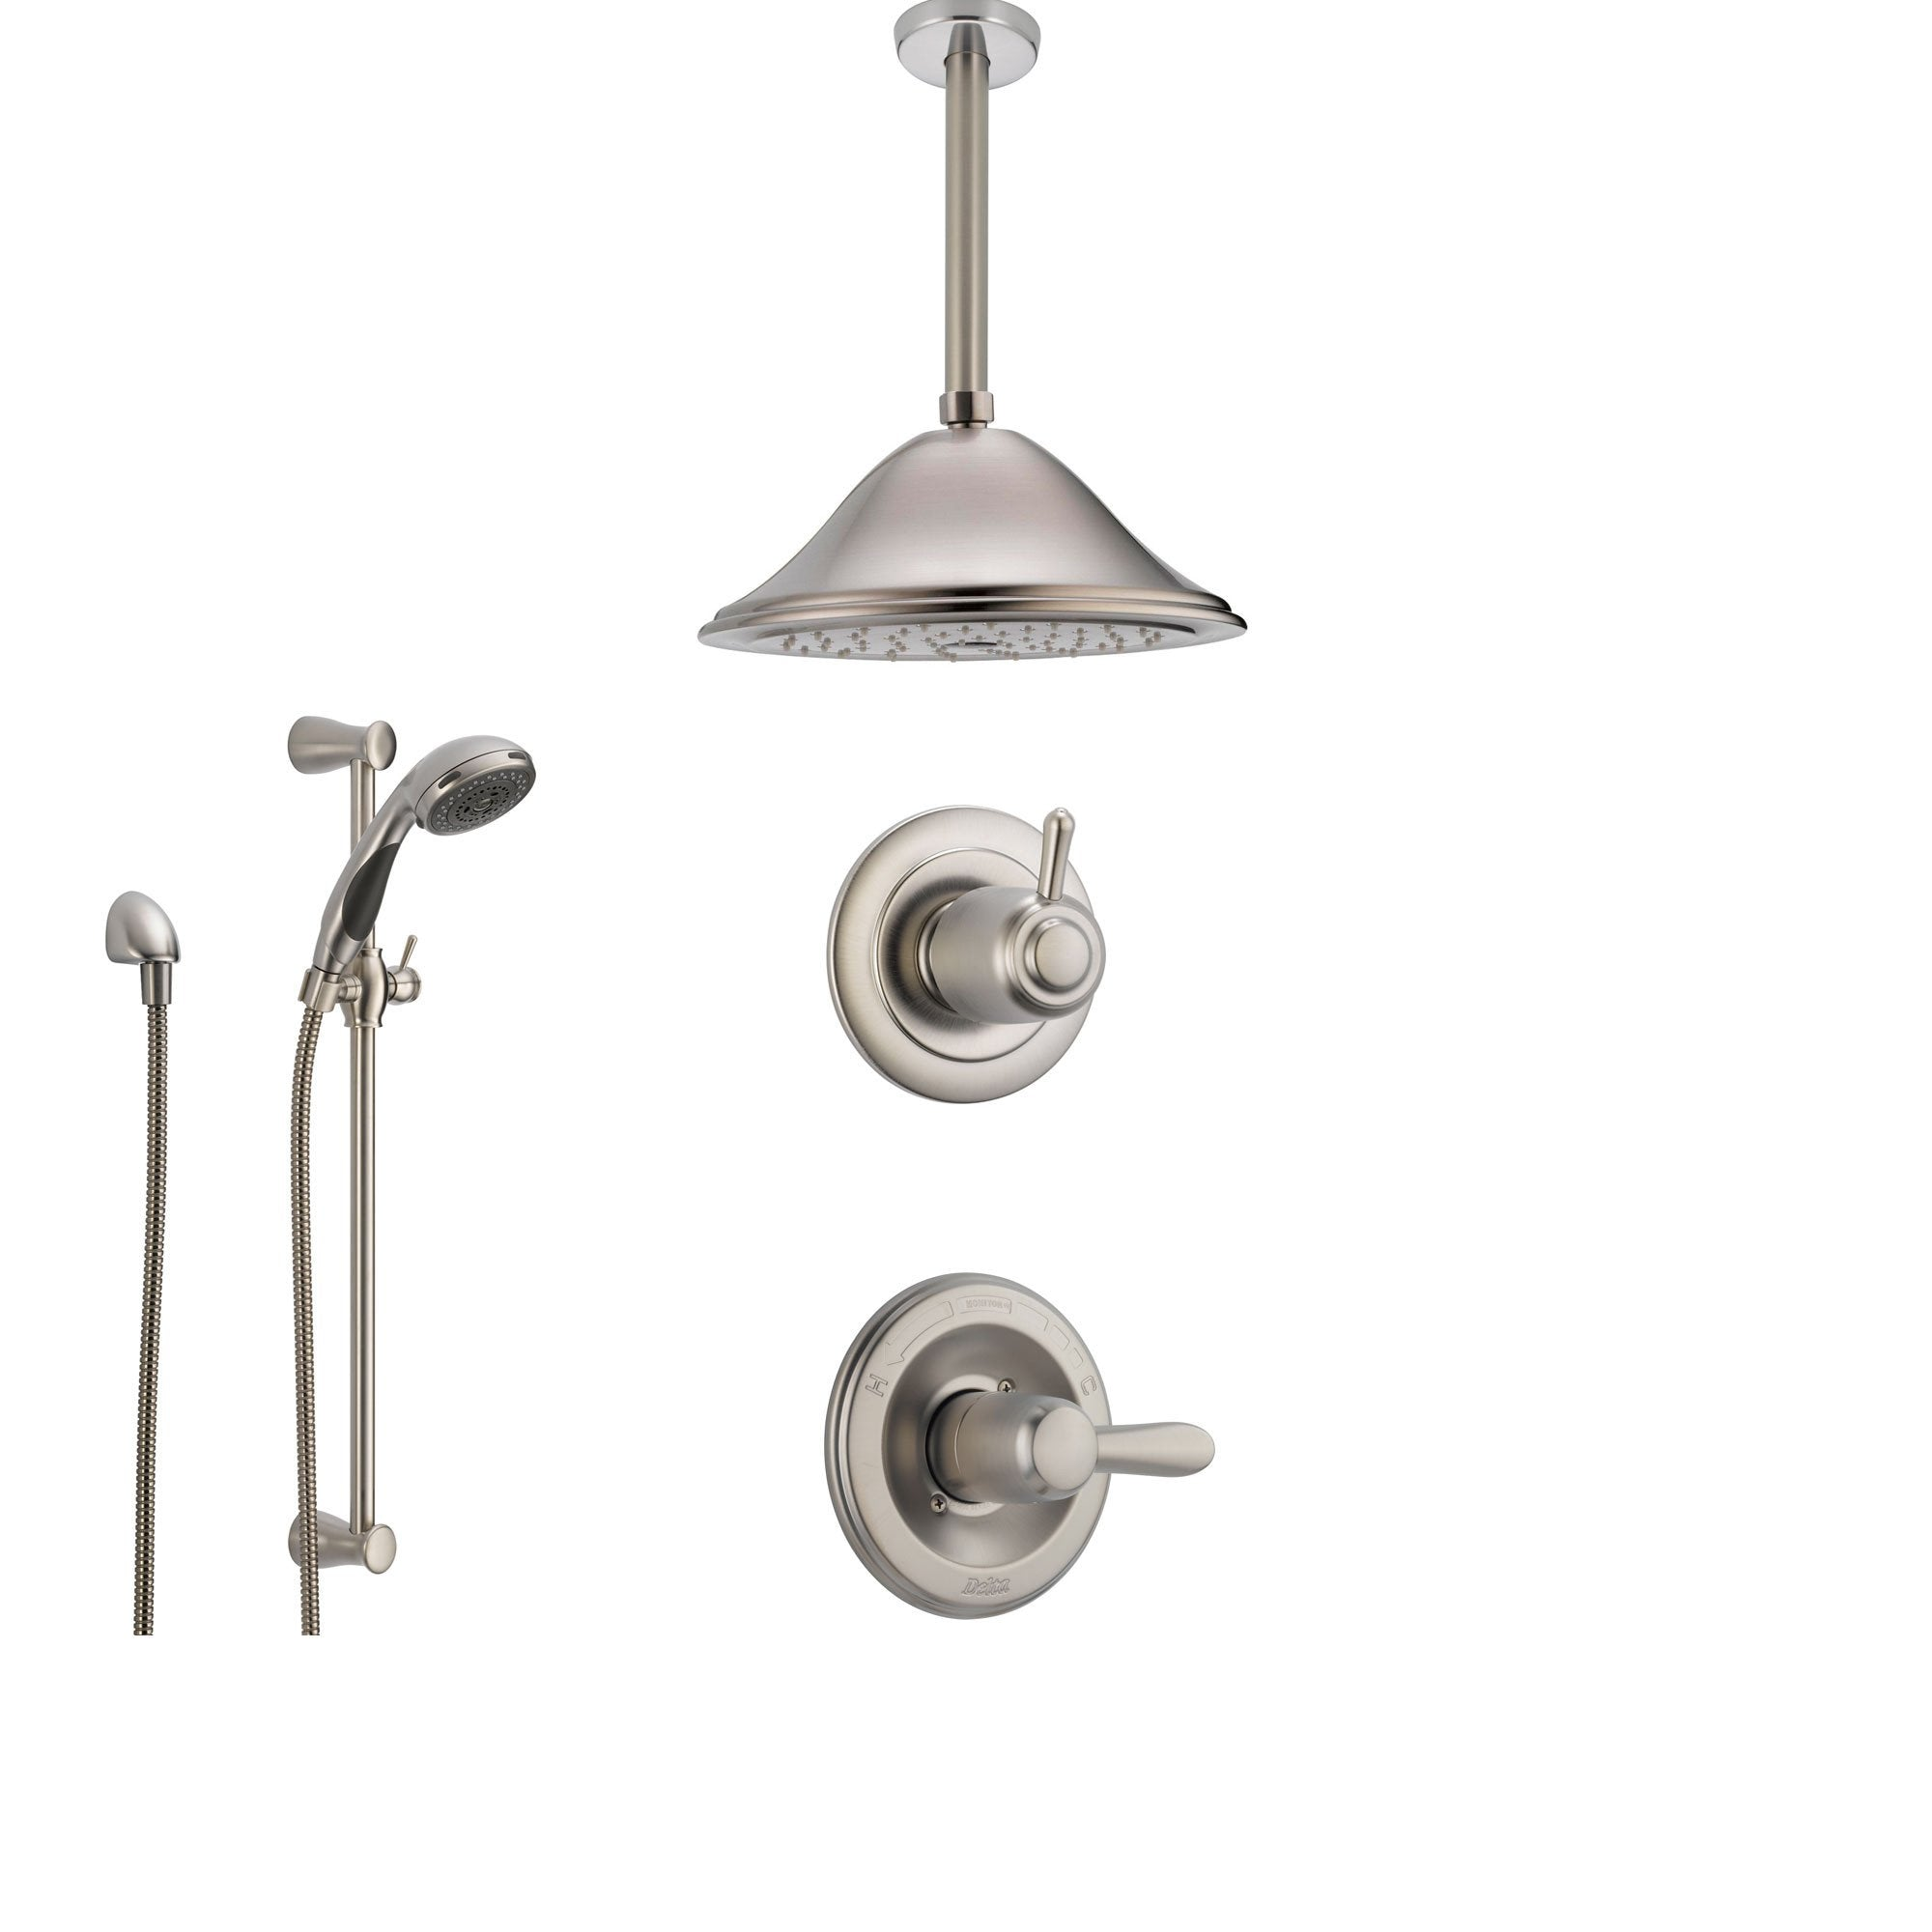 Delta Lahara Stainless Steel Shower System with Normal Shower Handle, 3-setting Diverter, Large Ceiling Mount Rain Showerhead, and Handheld Shower SS143882SS